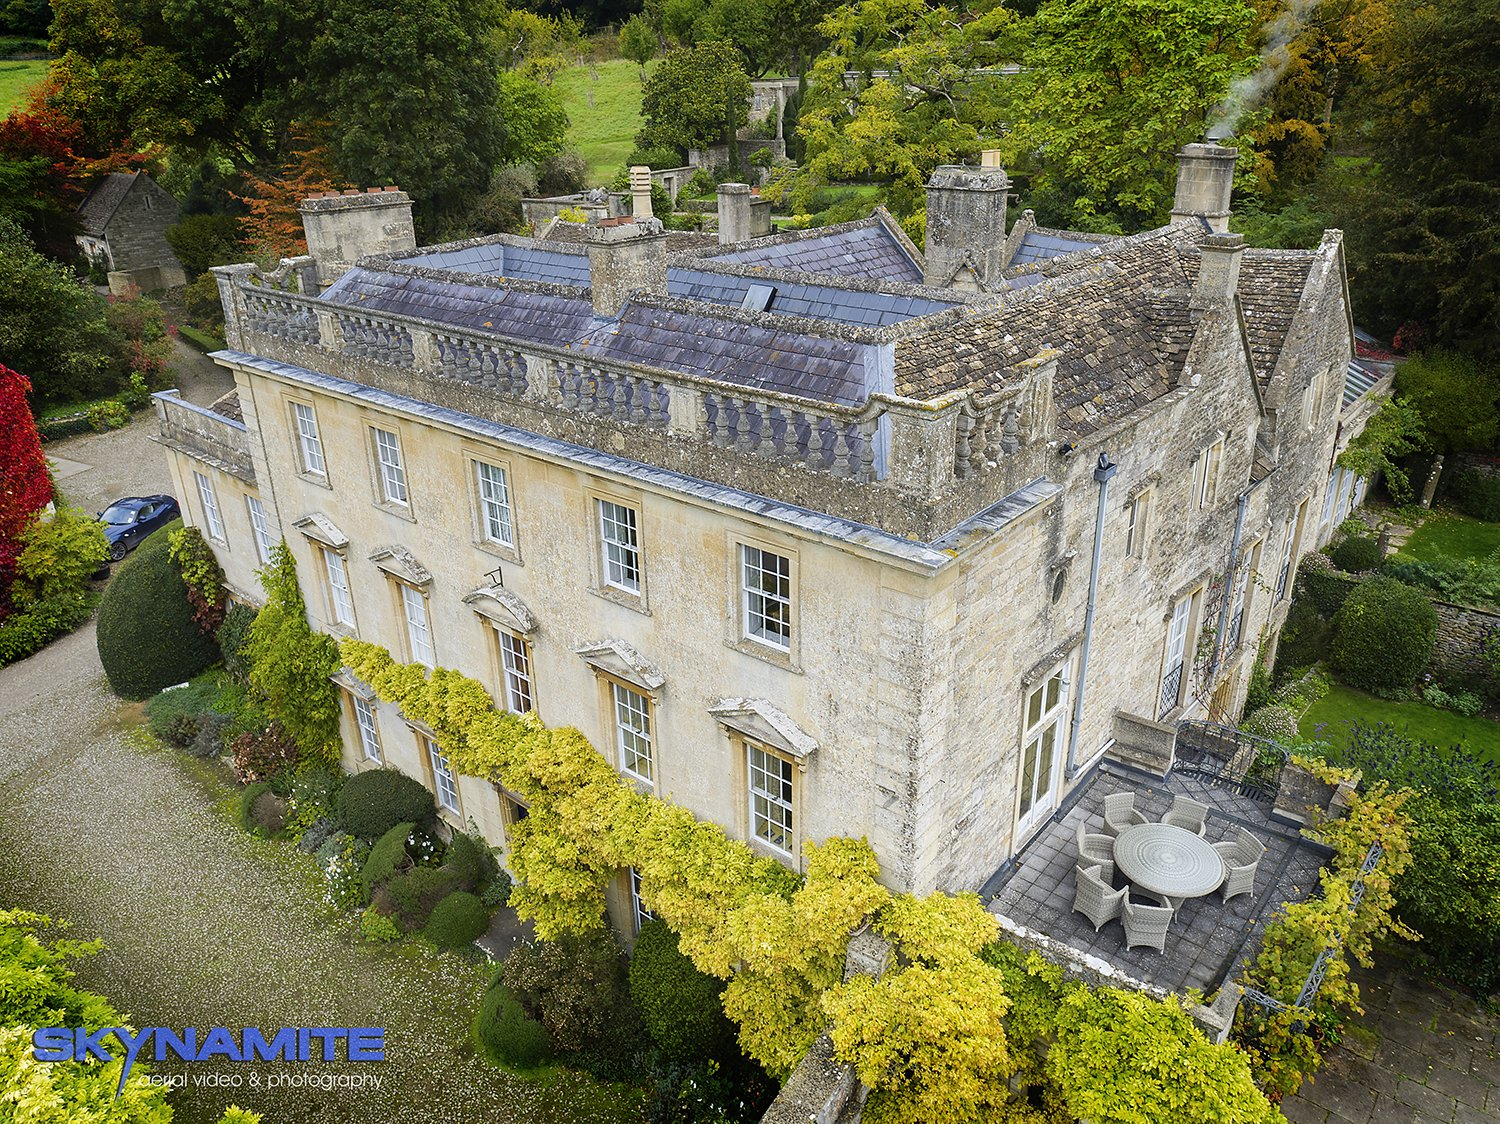 An aerial shot of Iford Manor, Wiltshire